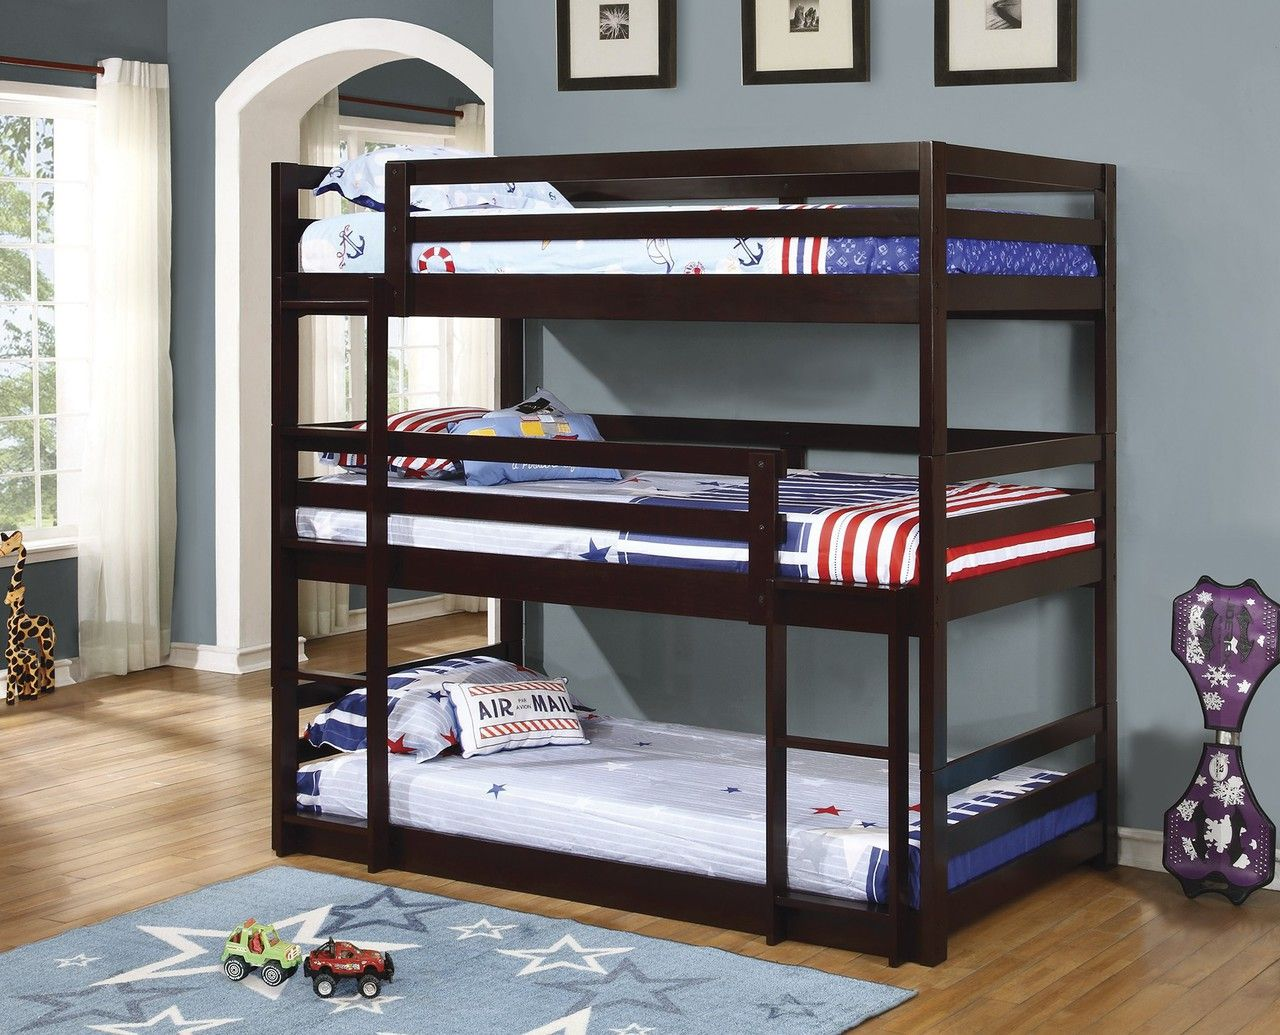 Jay furniture stair loft bed in cherry with desk kids black finish - Triple Twin Bunk Bed In Cappuccino Finish